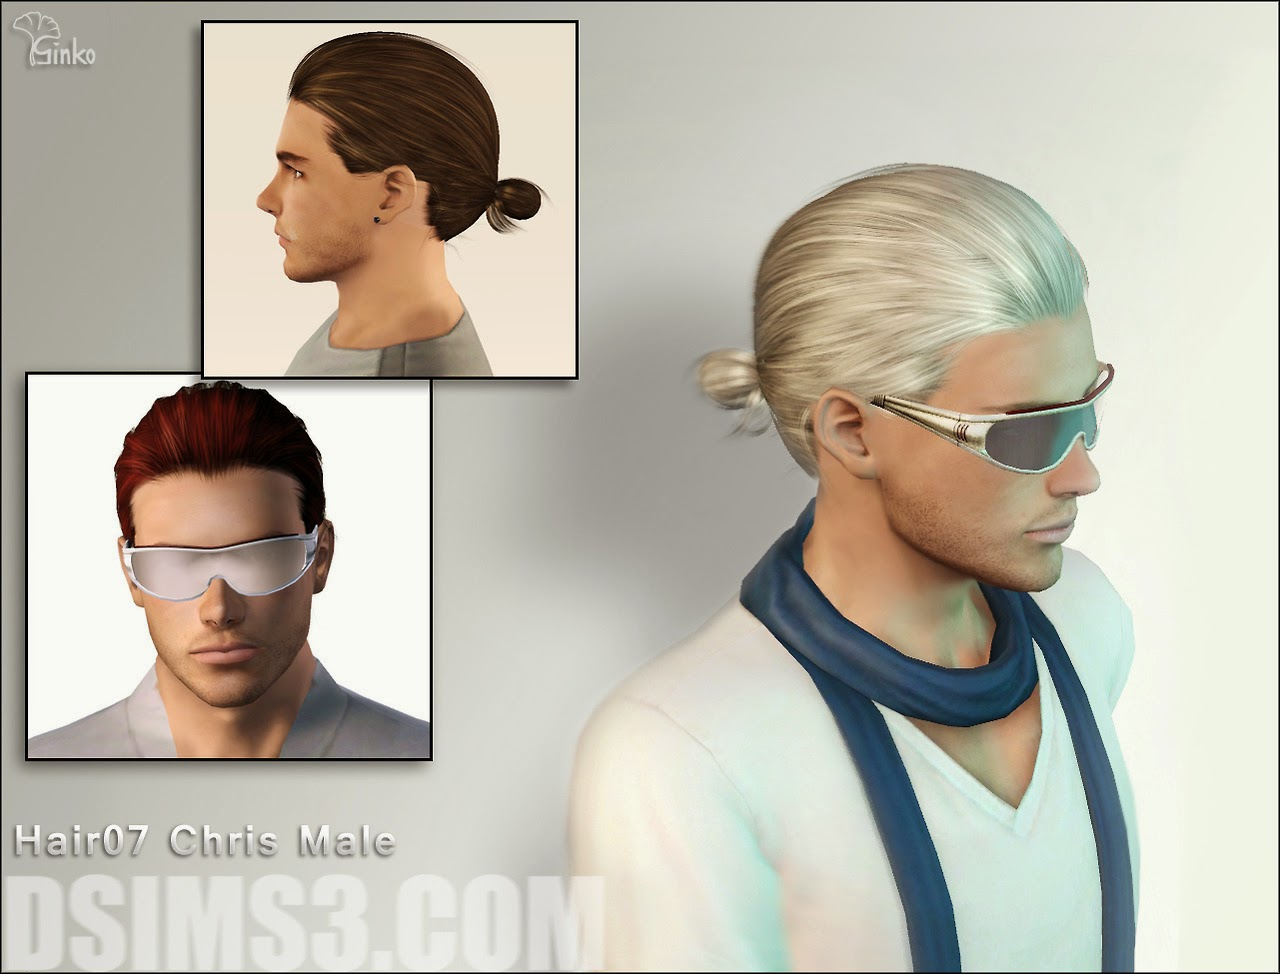 Swell Tsr Sims 4 Hairstyles Free Image Hairstyles For Women Draintrainus